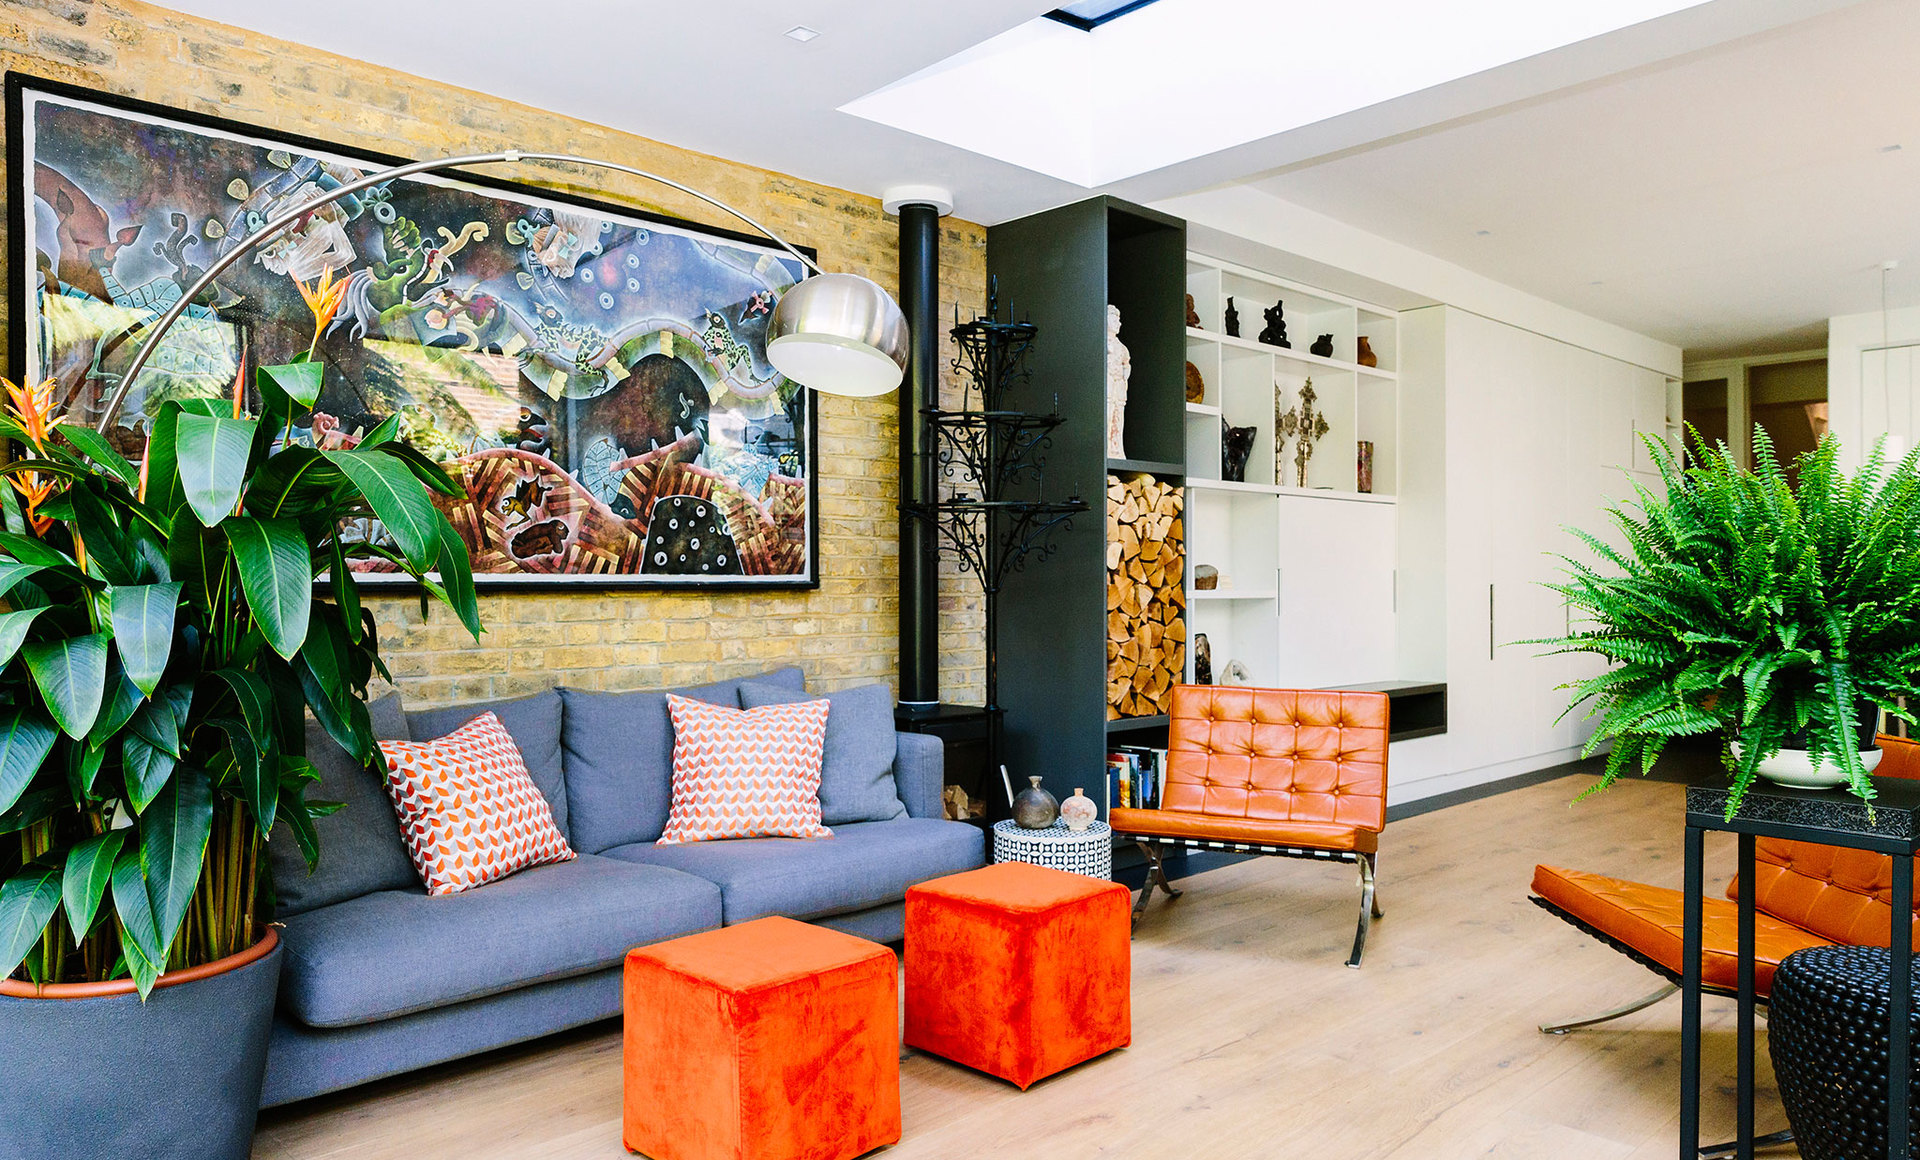 Pops of orange add colour to an organic light and bright living room with indoor greenery